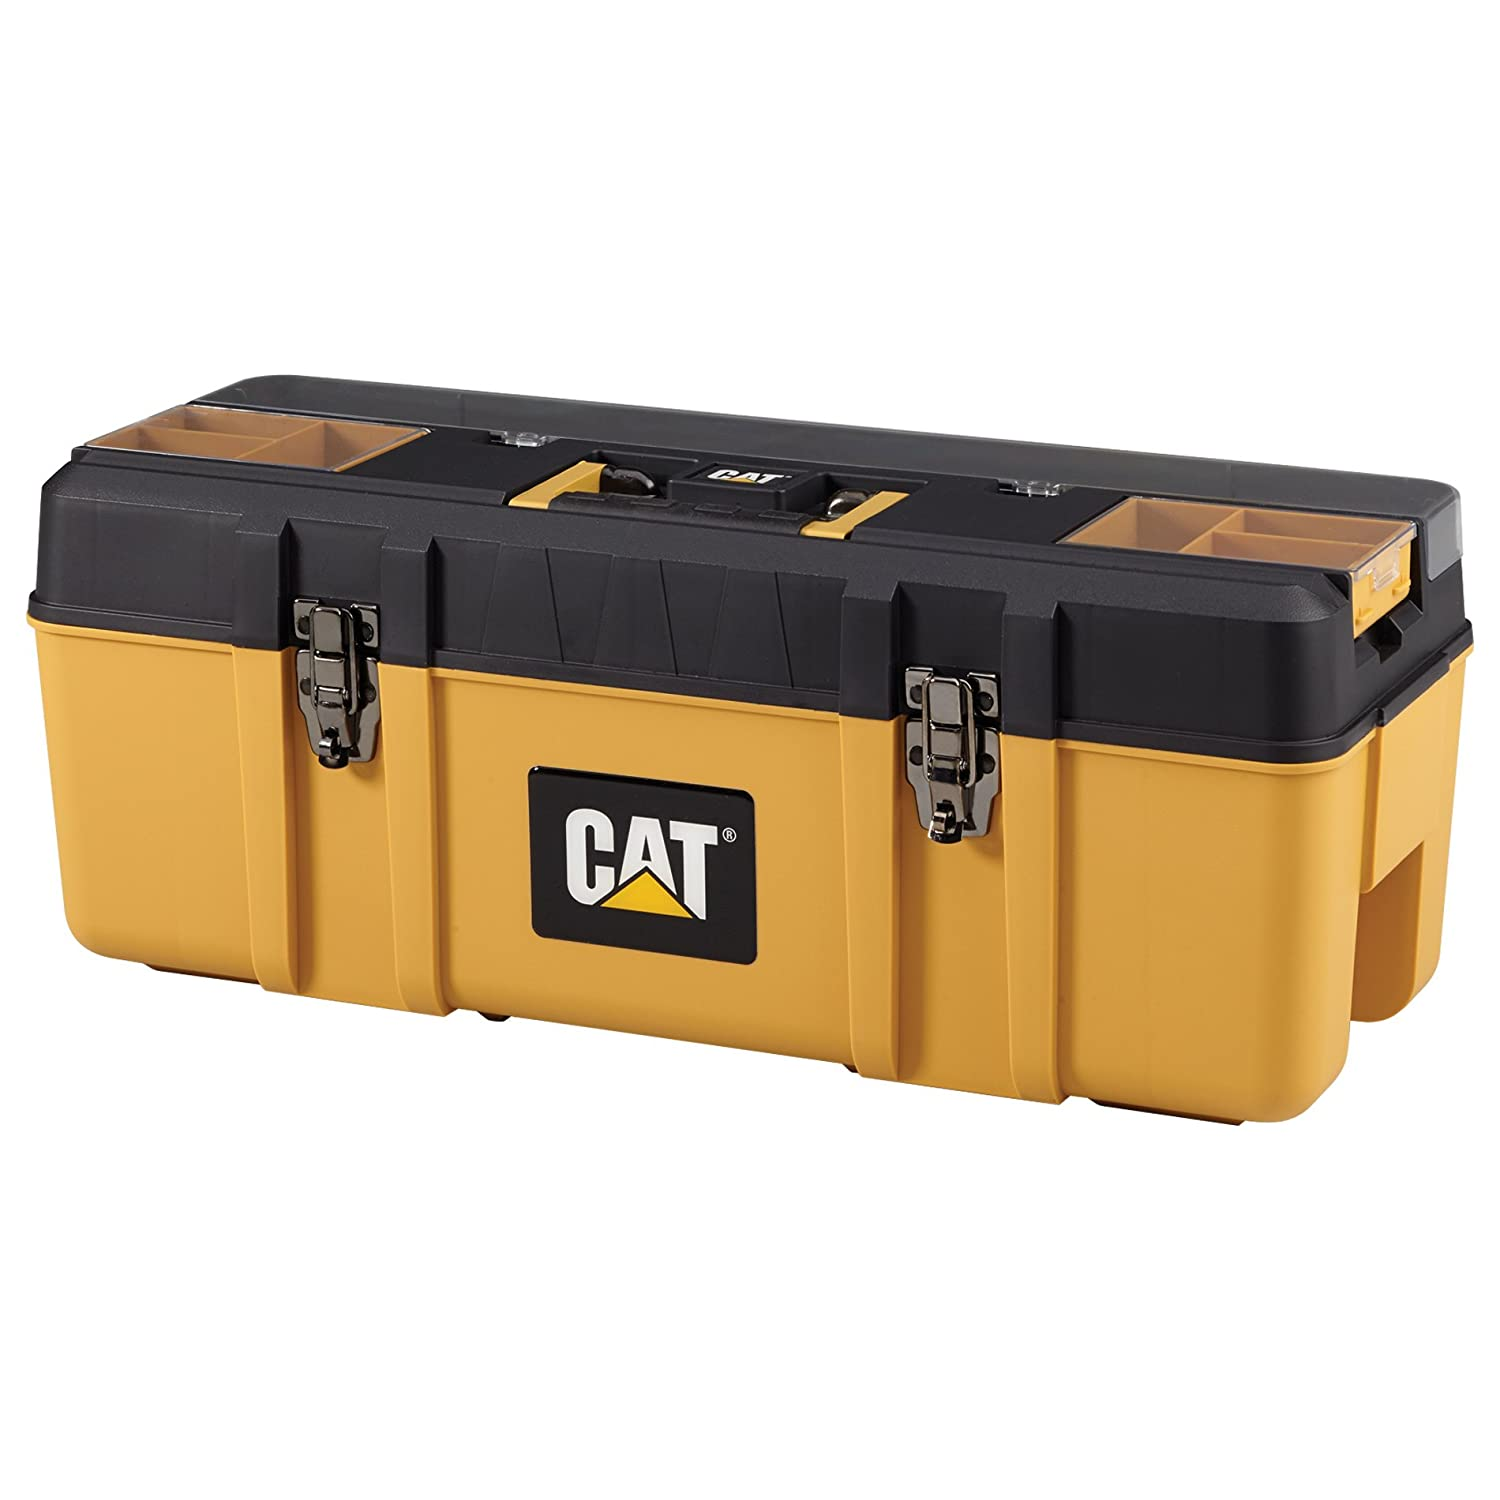 1. Cat Premium Plastic Portable Toolbox with Lid Organization and Removable Tote, 26